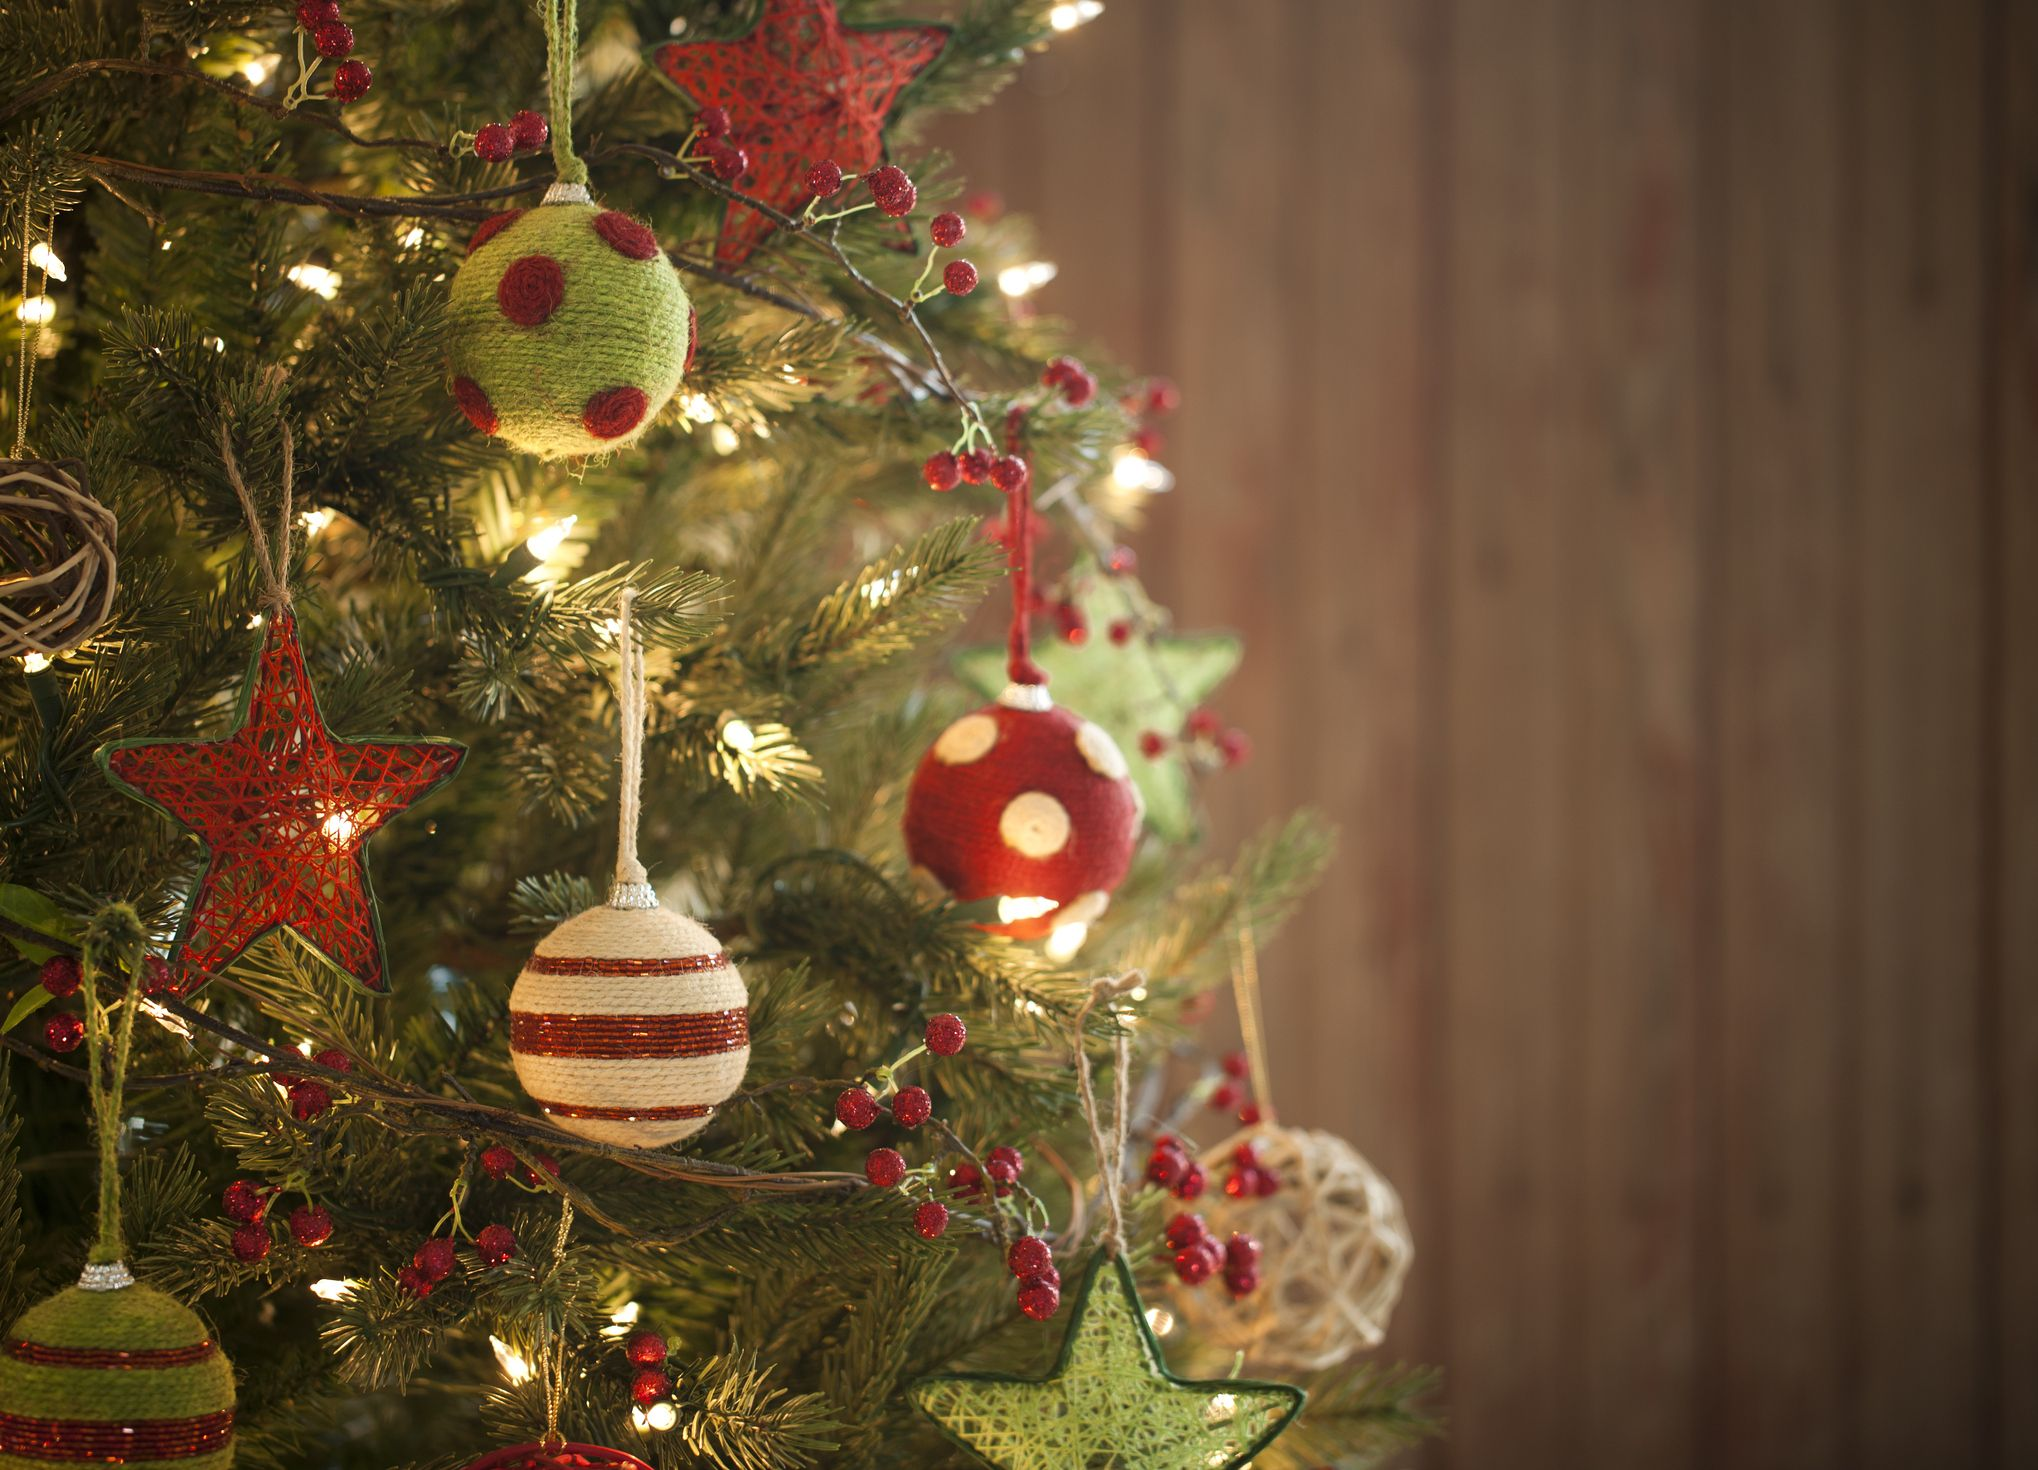 15 Best Christmas Ornament Storage Hacks That\u0027ll Make Decorating Your Tree  a Total Breeze